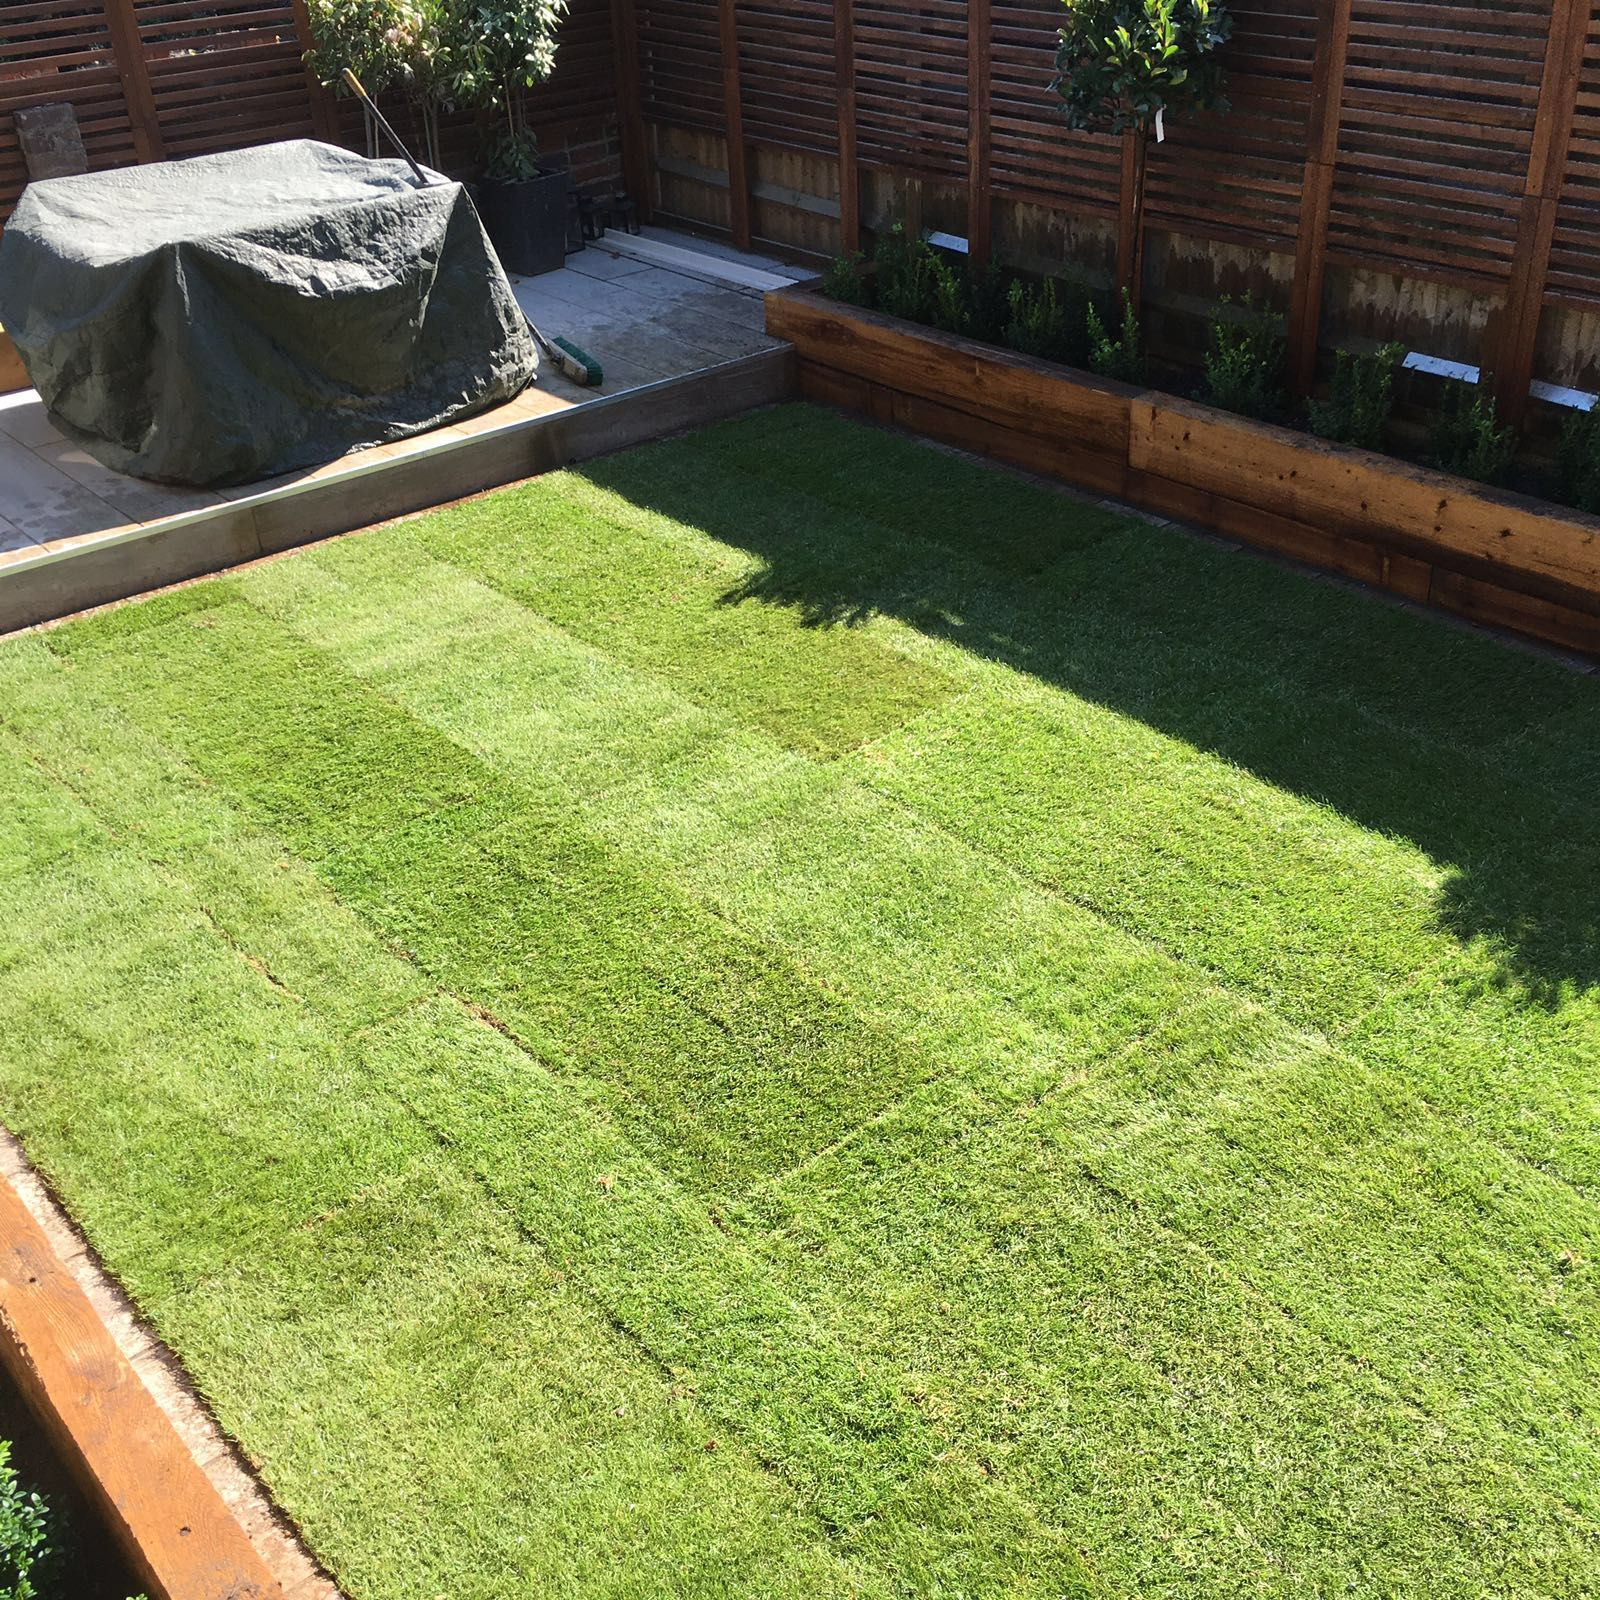 Landscaping: Rolawn Medallion Turf Laid In This Garden. New Lawn.